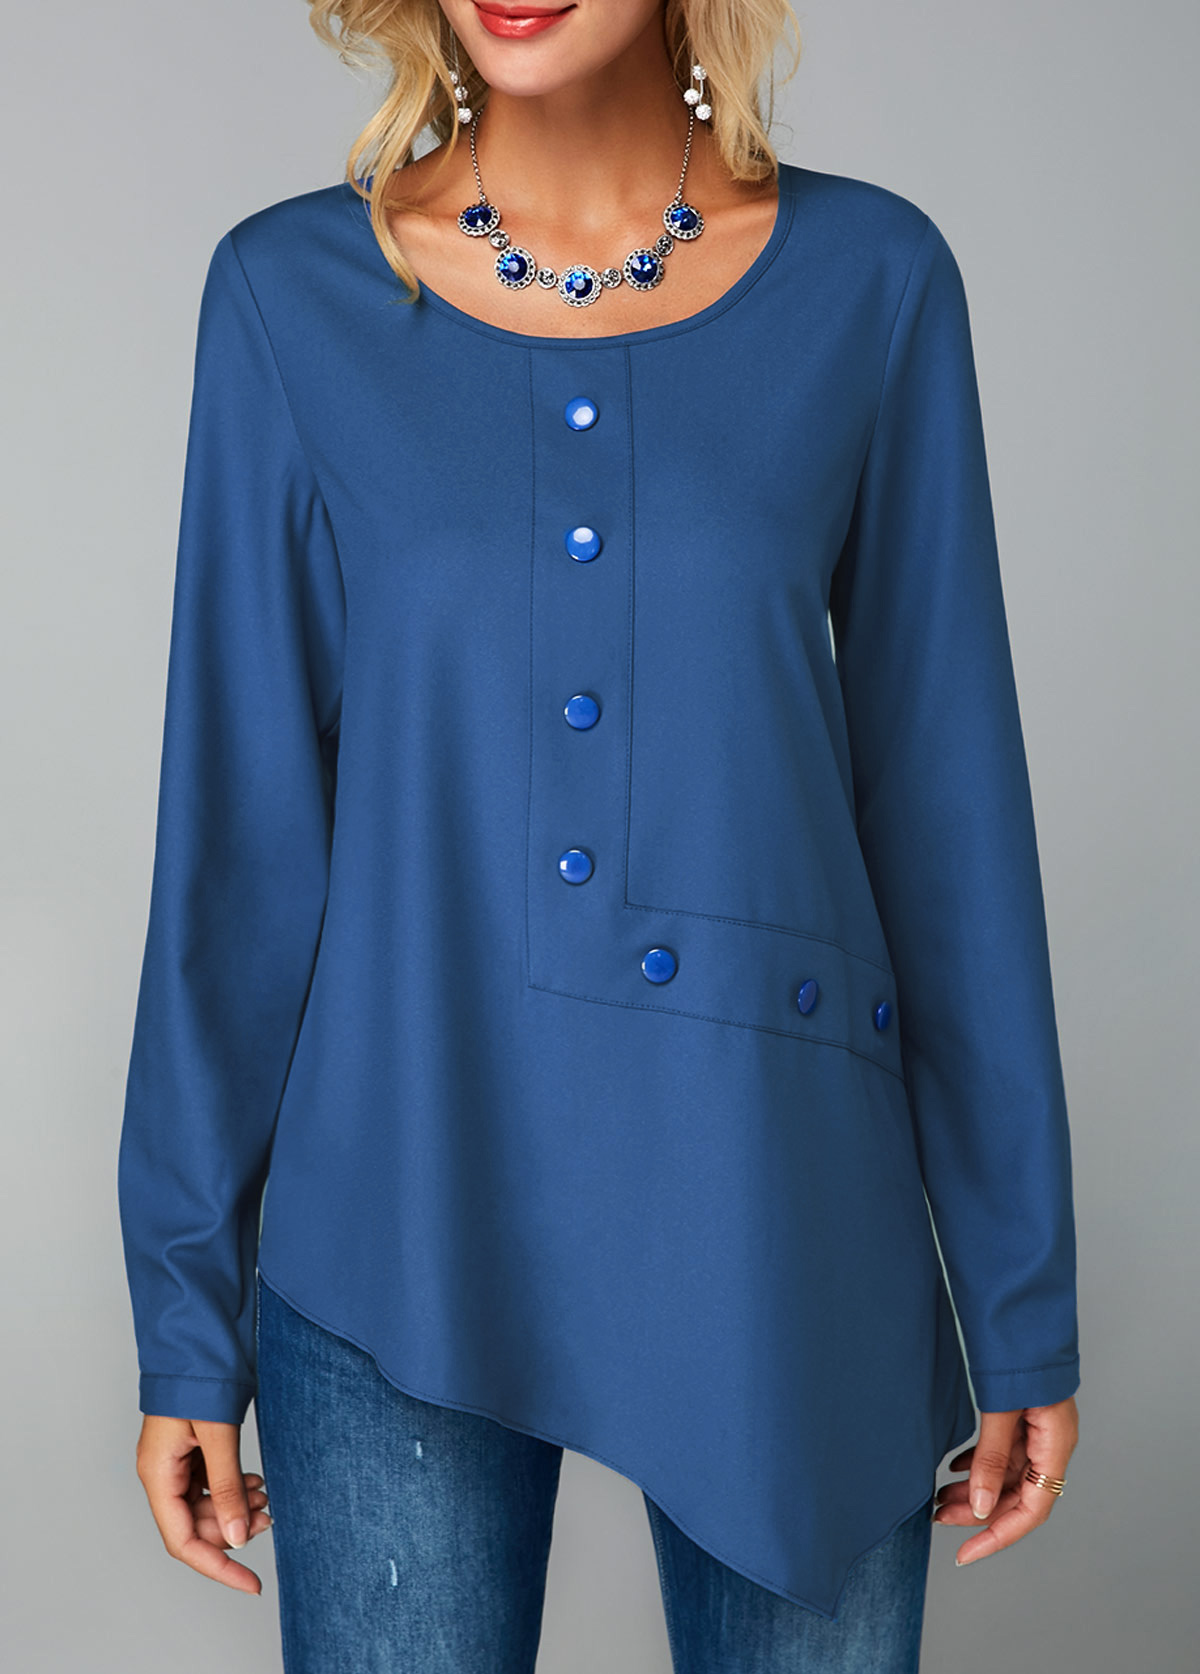 Keyhole Back Royal Blue Button Decorated Blouse